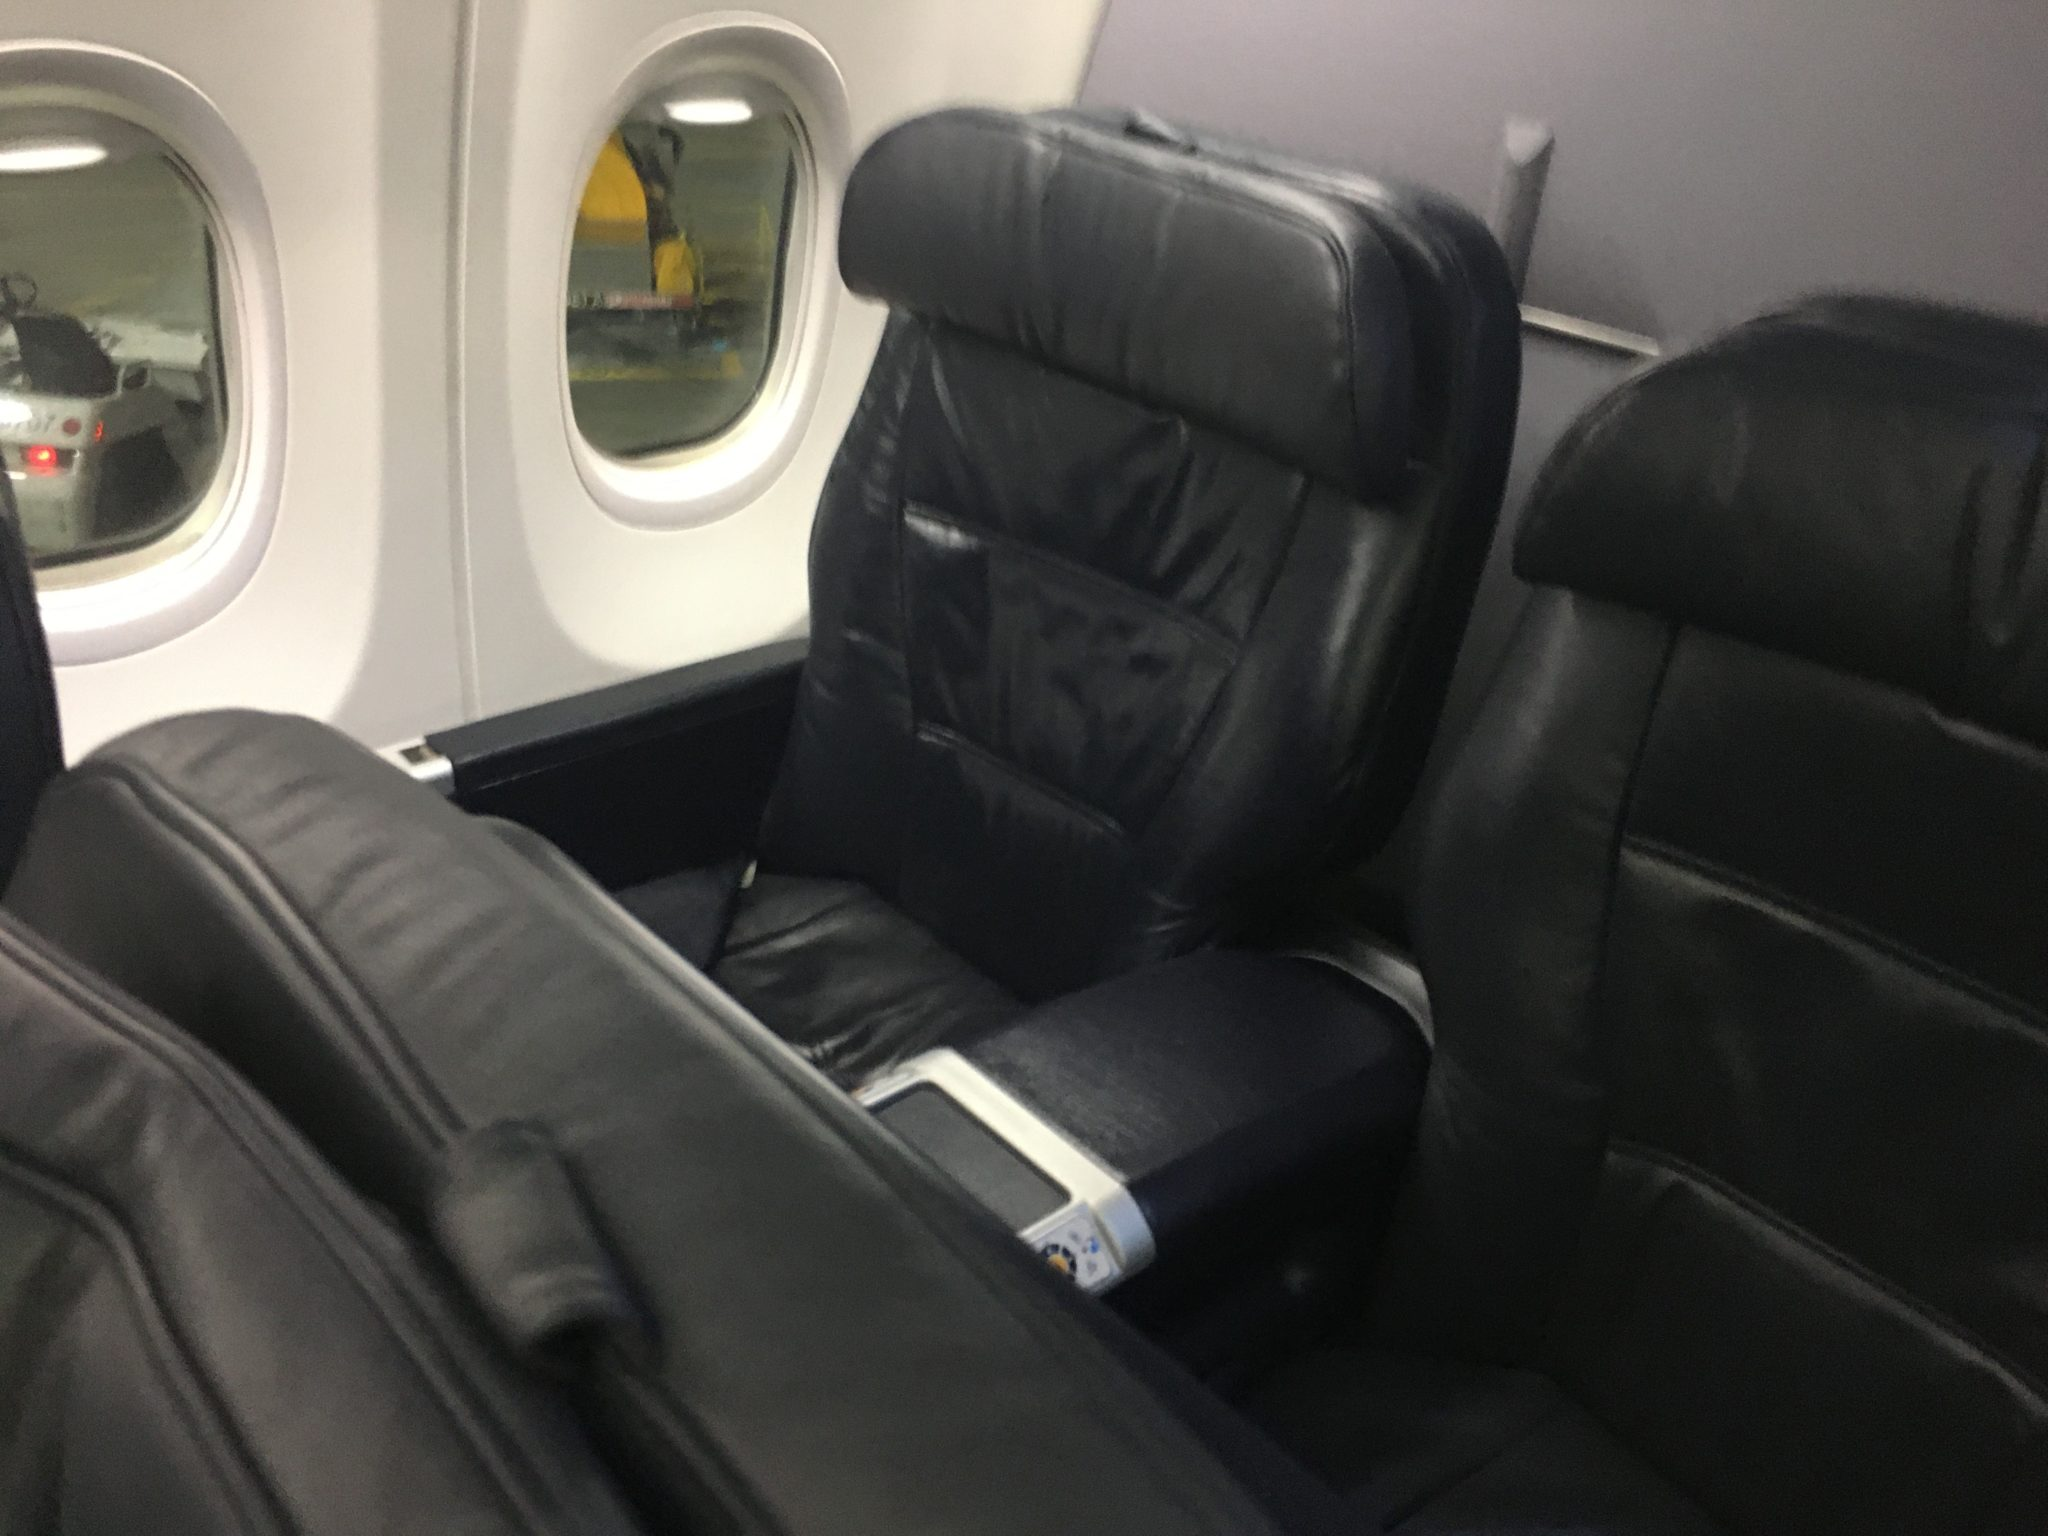 United First On 737ng Begs For Hard Product Upgrade But Soft Shines Runway Girlrunway Girl